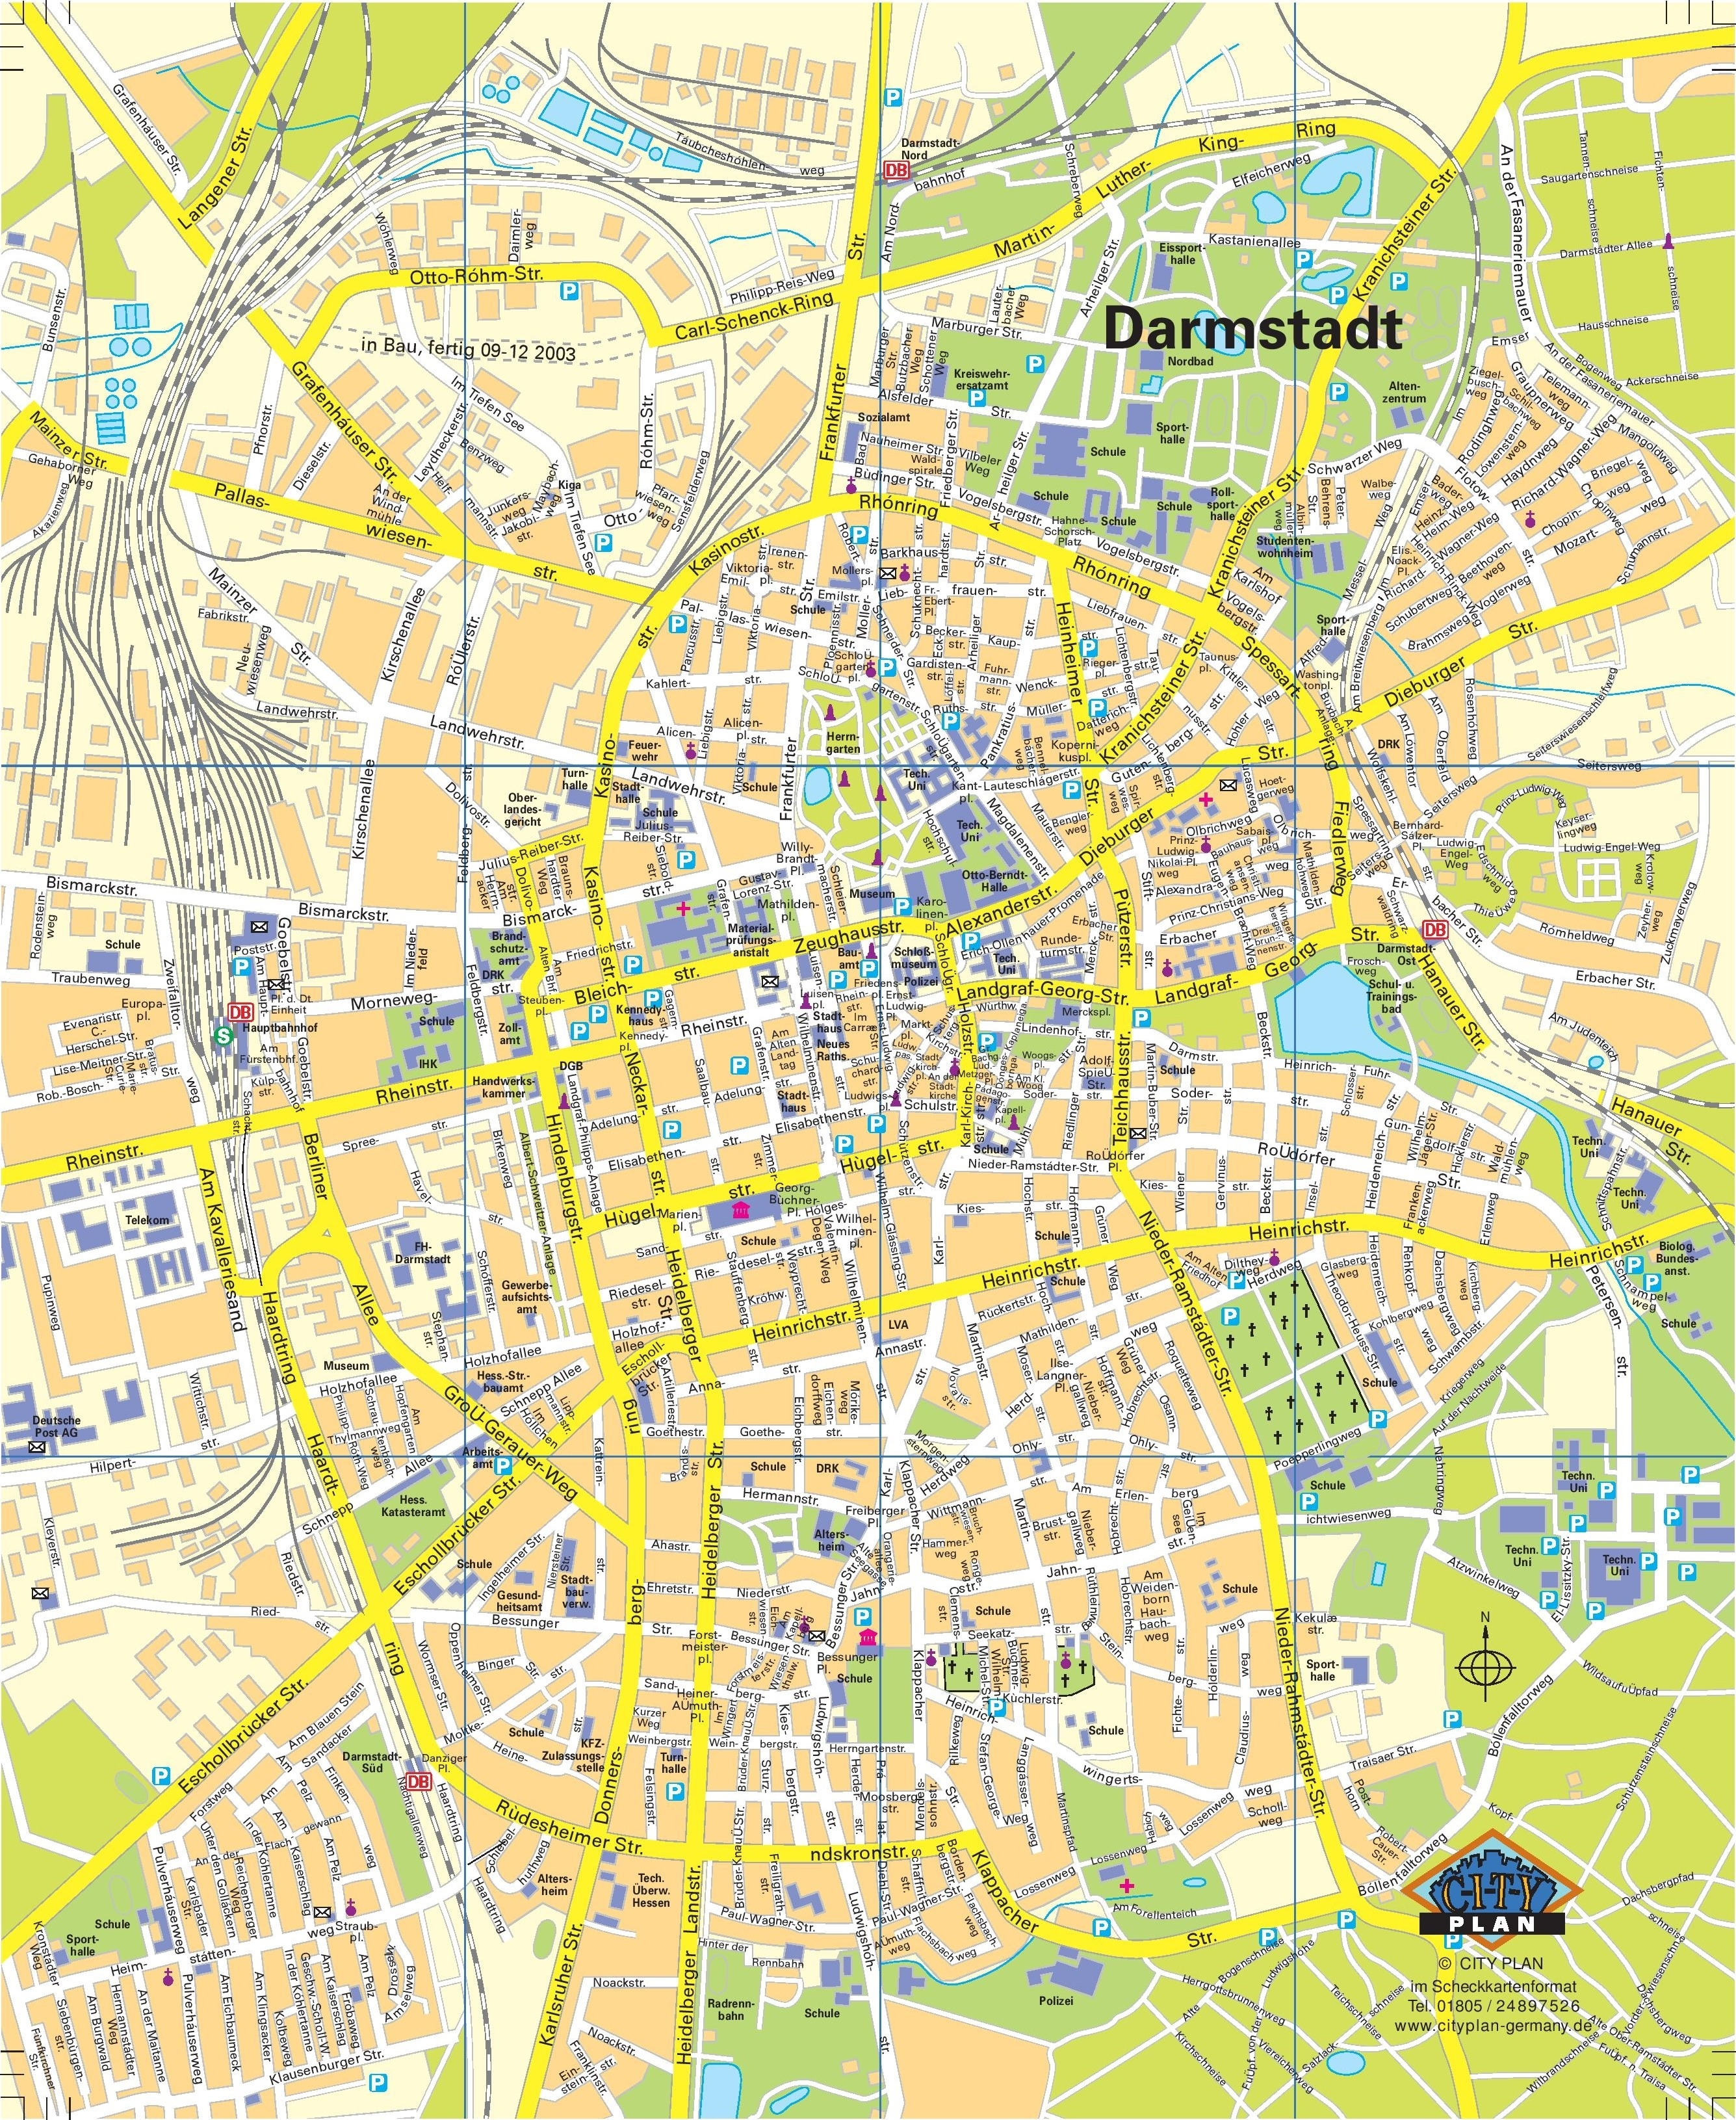 Darmstadt Tourist Map intended for Darmstadt Hessen Germany Map